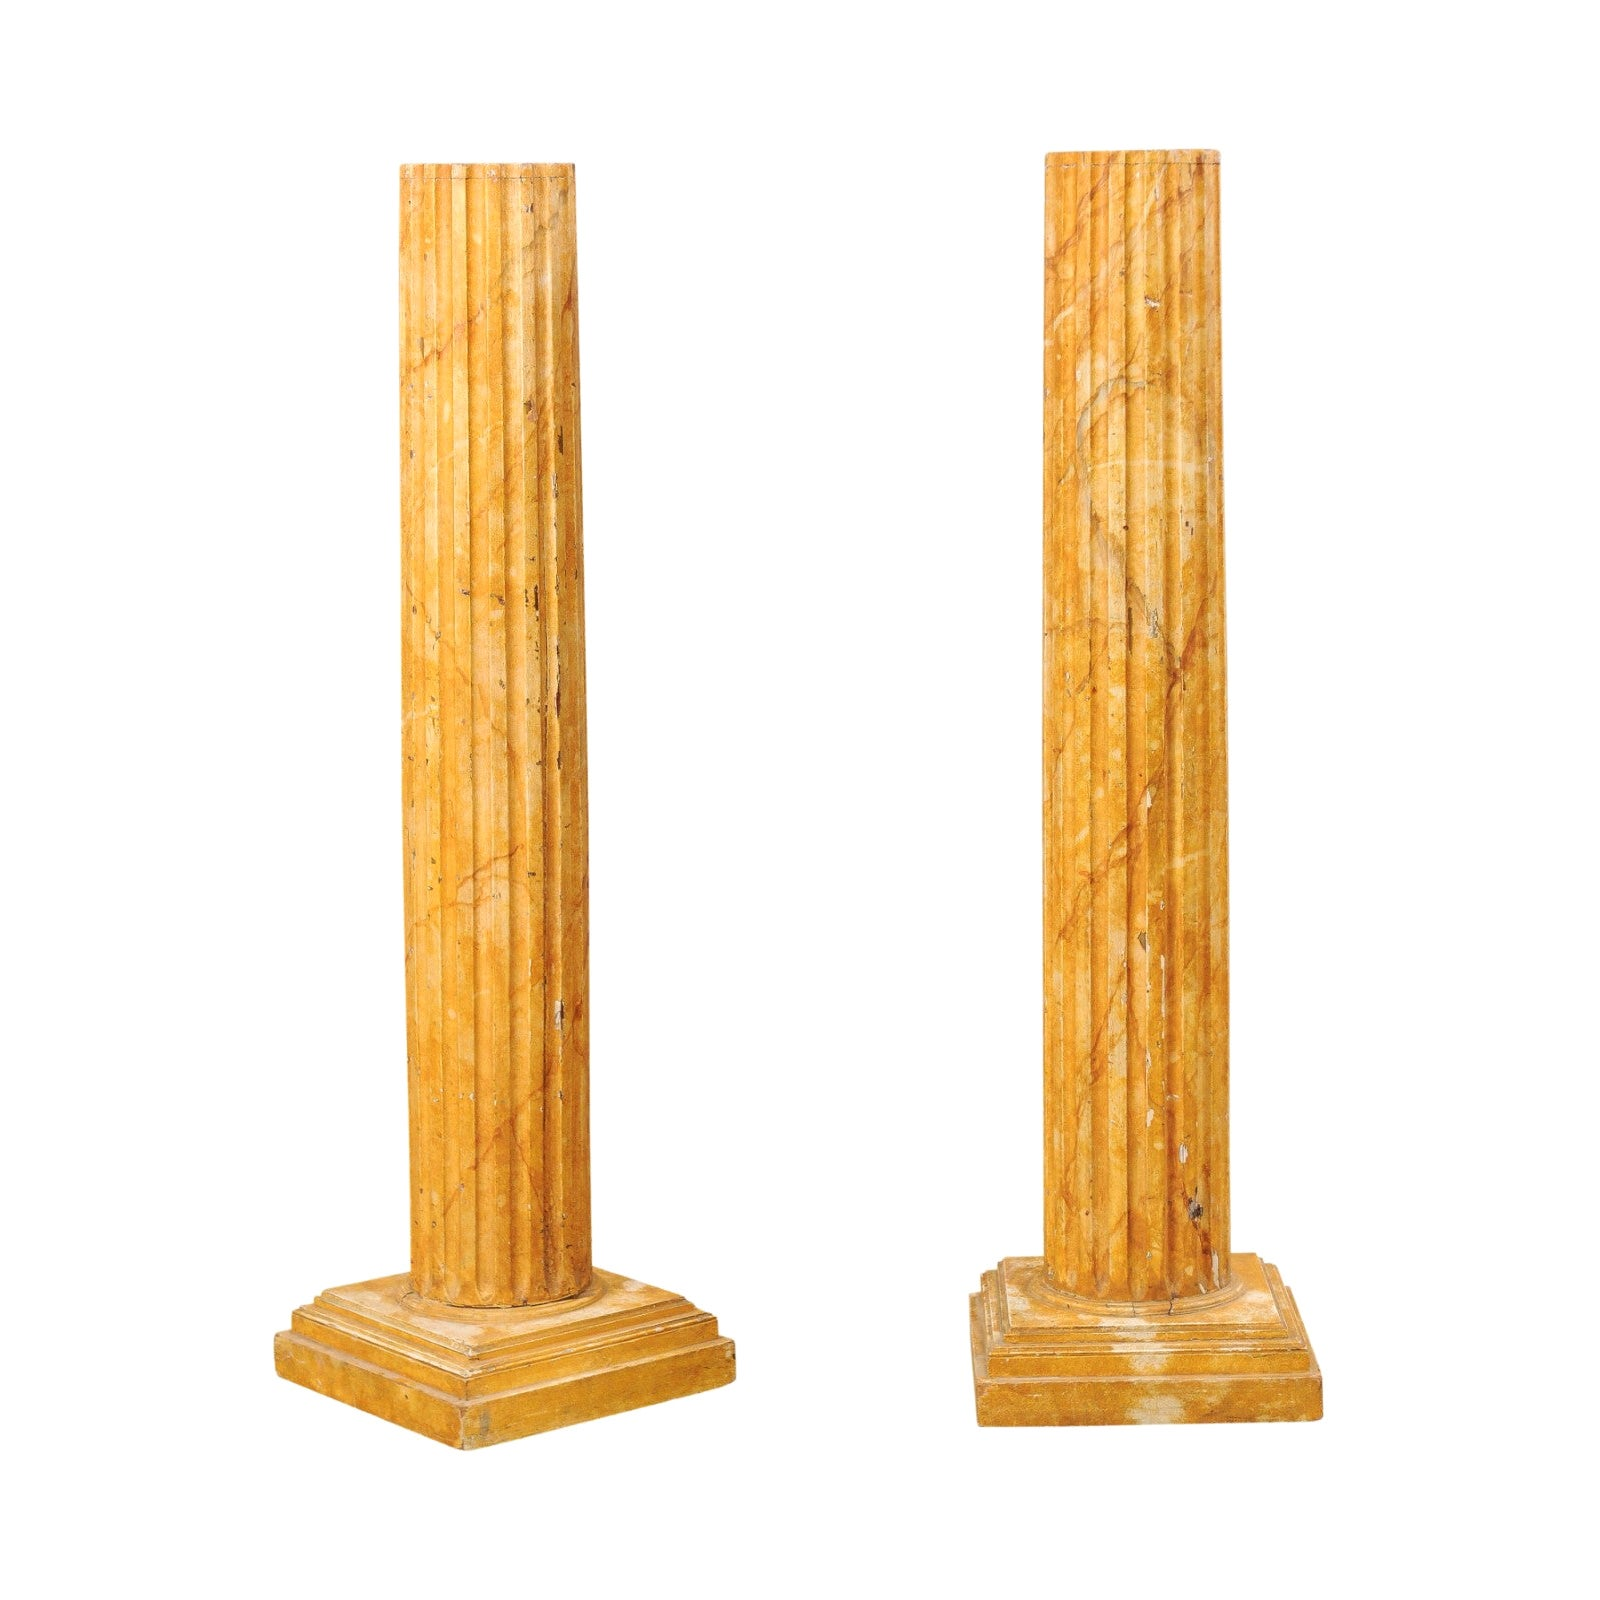 French Pair of Fluted Columns with Faux Marble Finish, Mid-20th Century